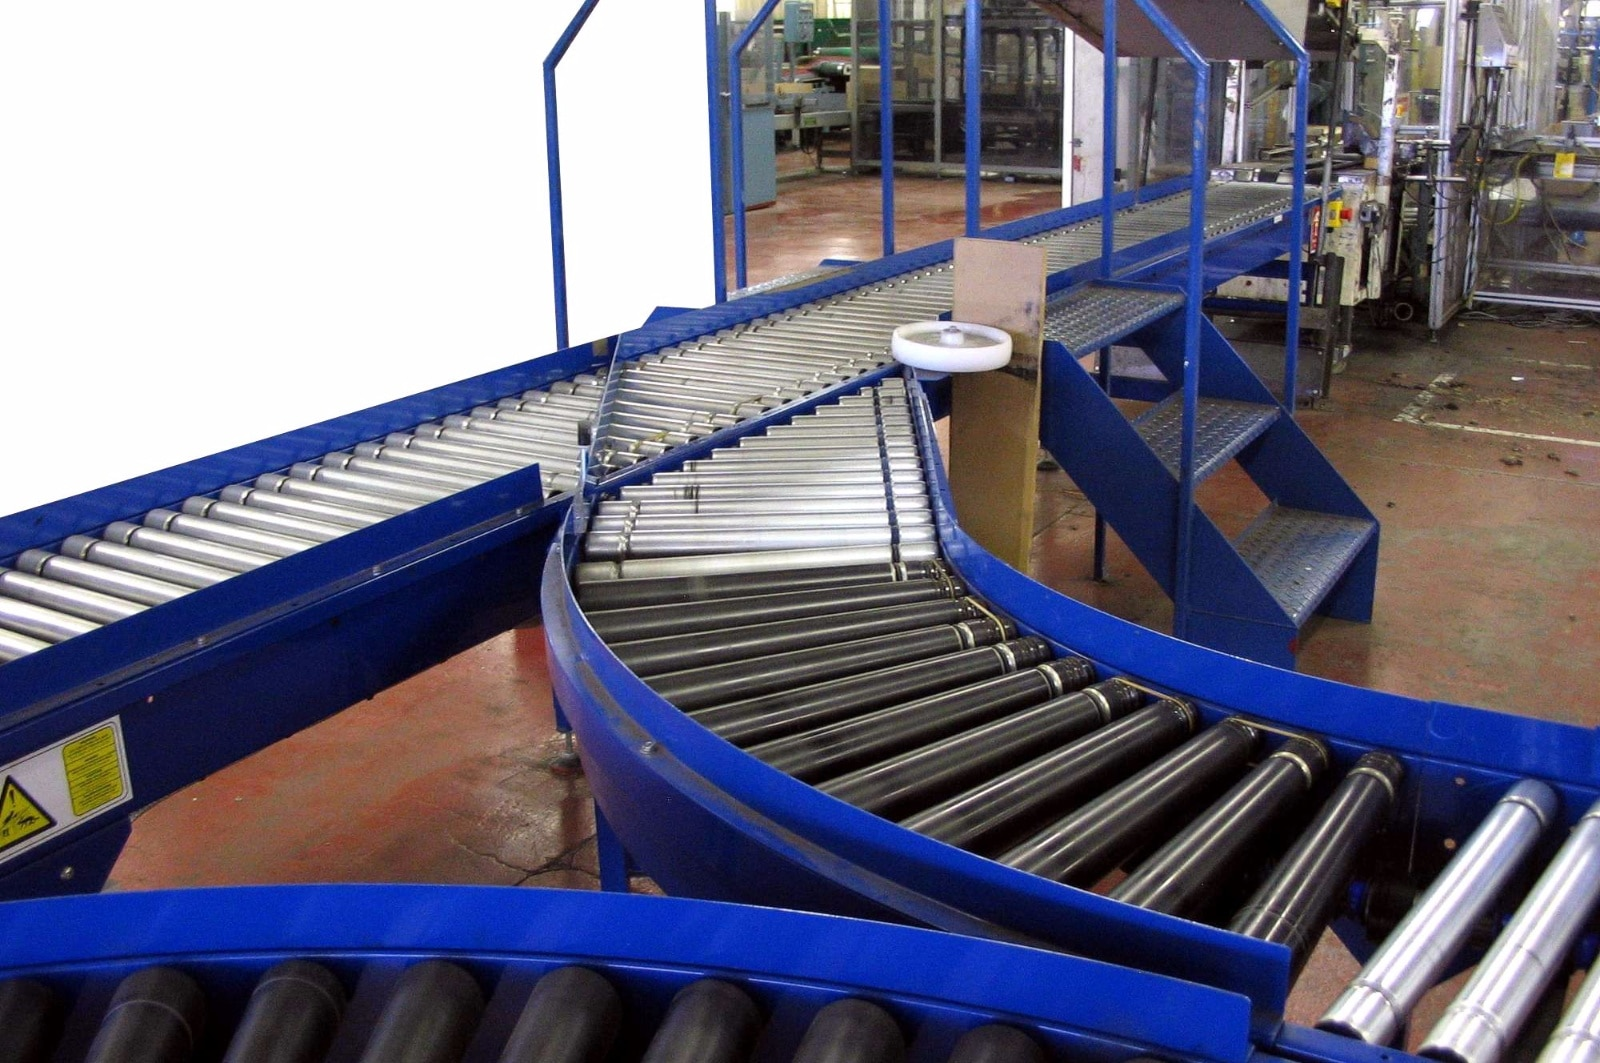 Conveyor Systems - Roller and Spiral Conveyors | LOC8 UAE